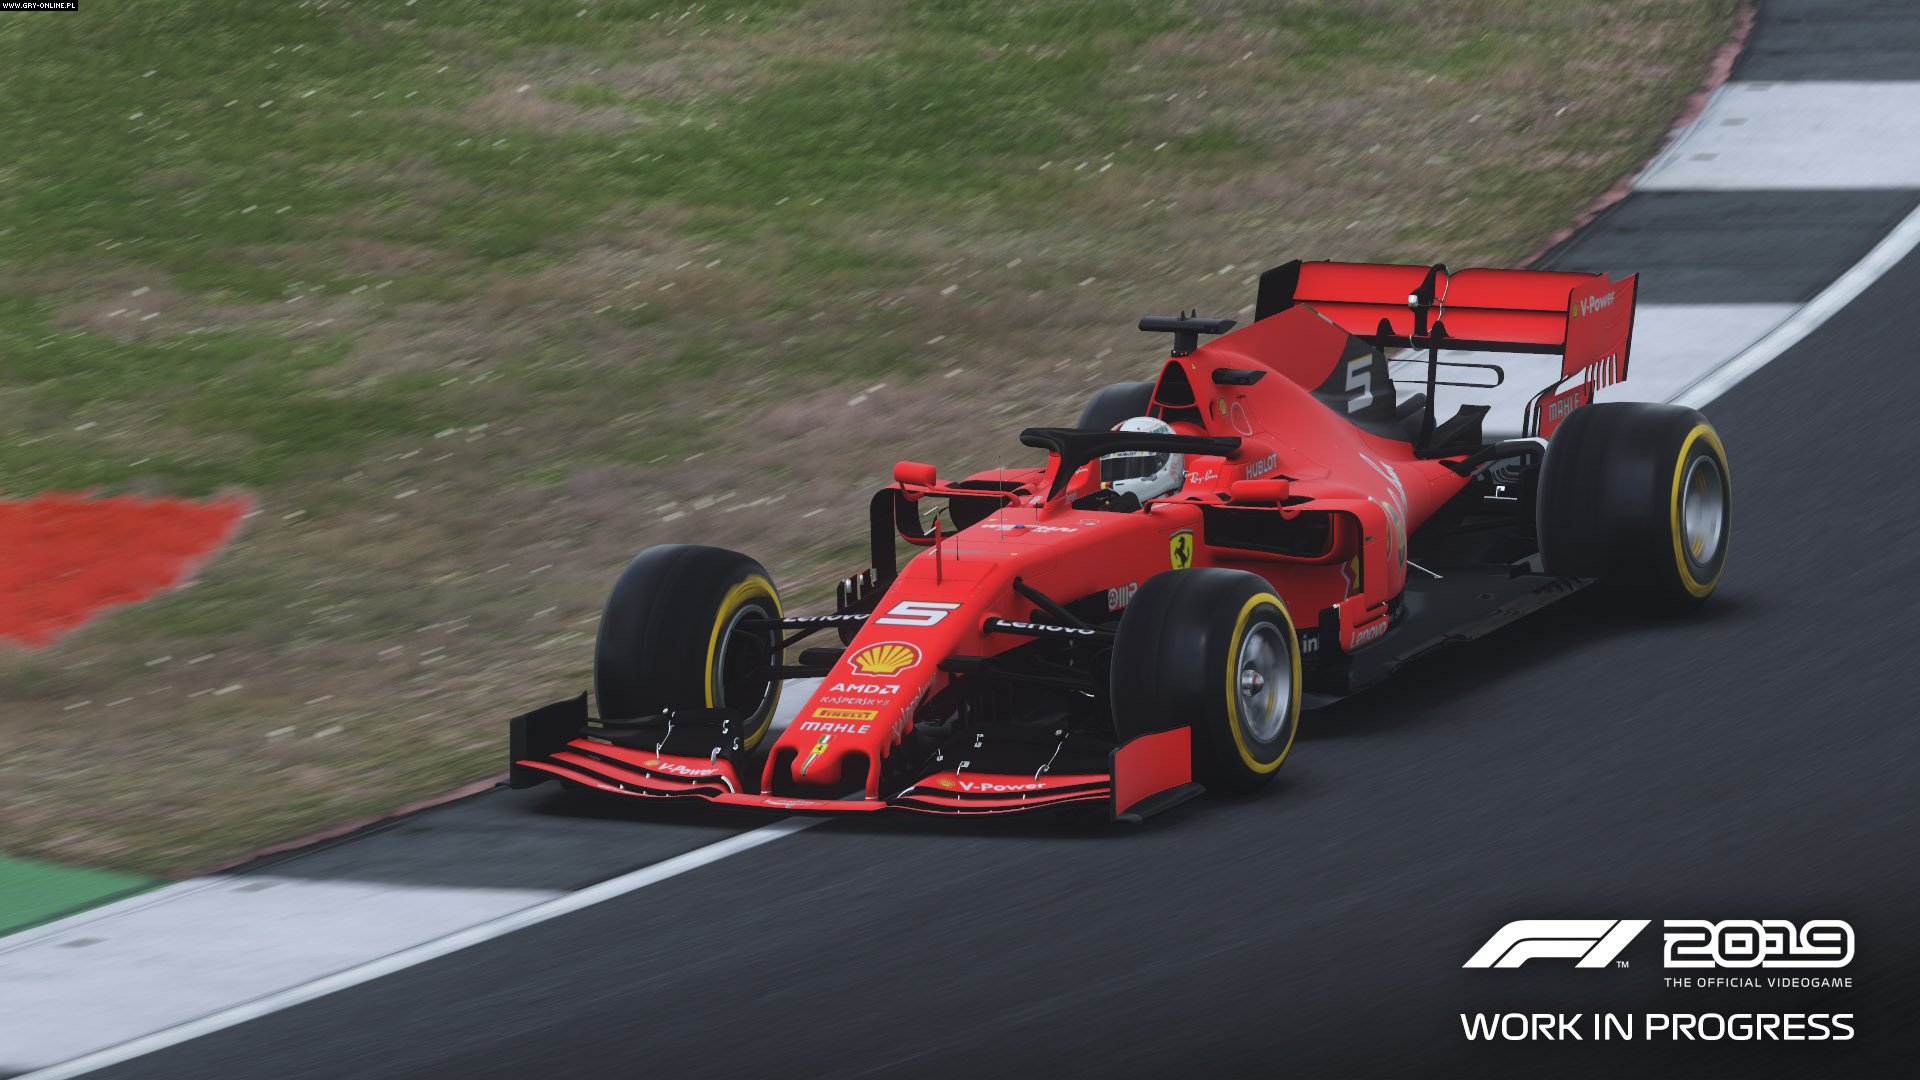 F1 2019 PC, PS4, XONE Games Image 3/62, Codemasters Software